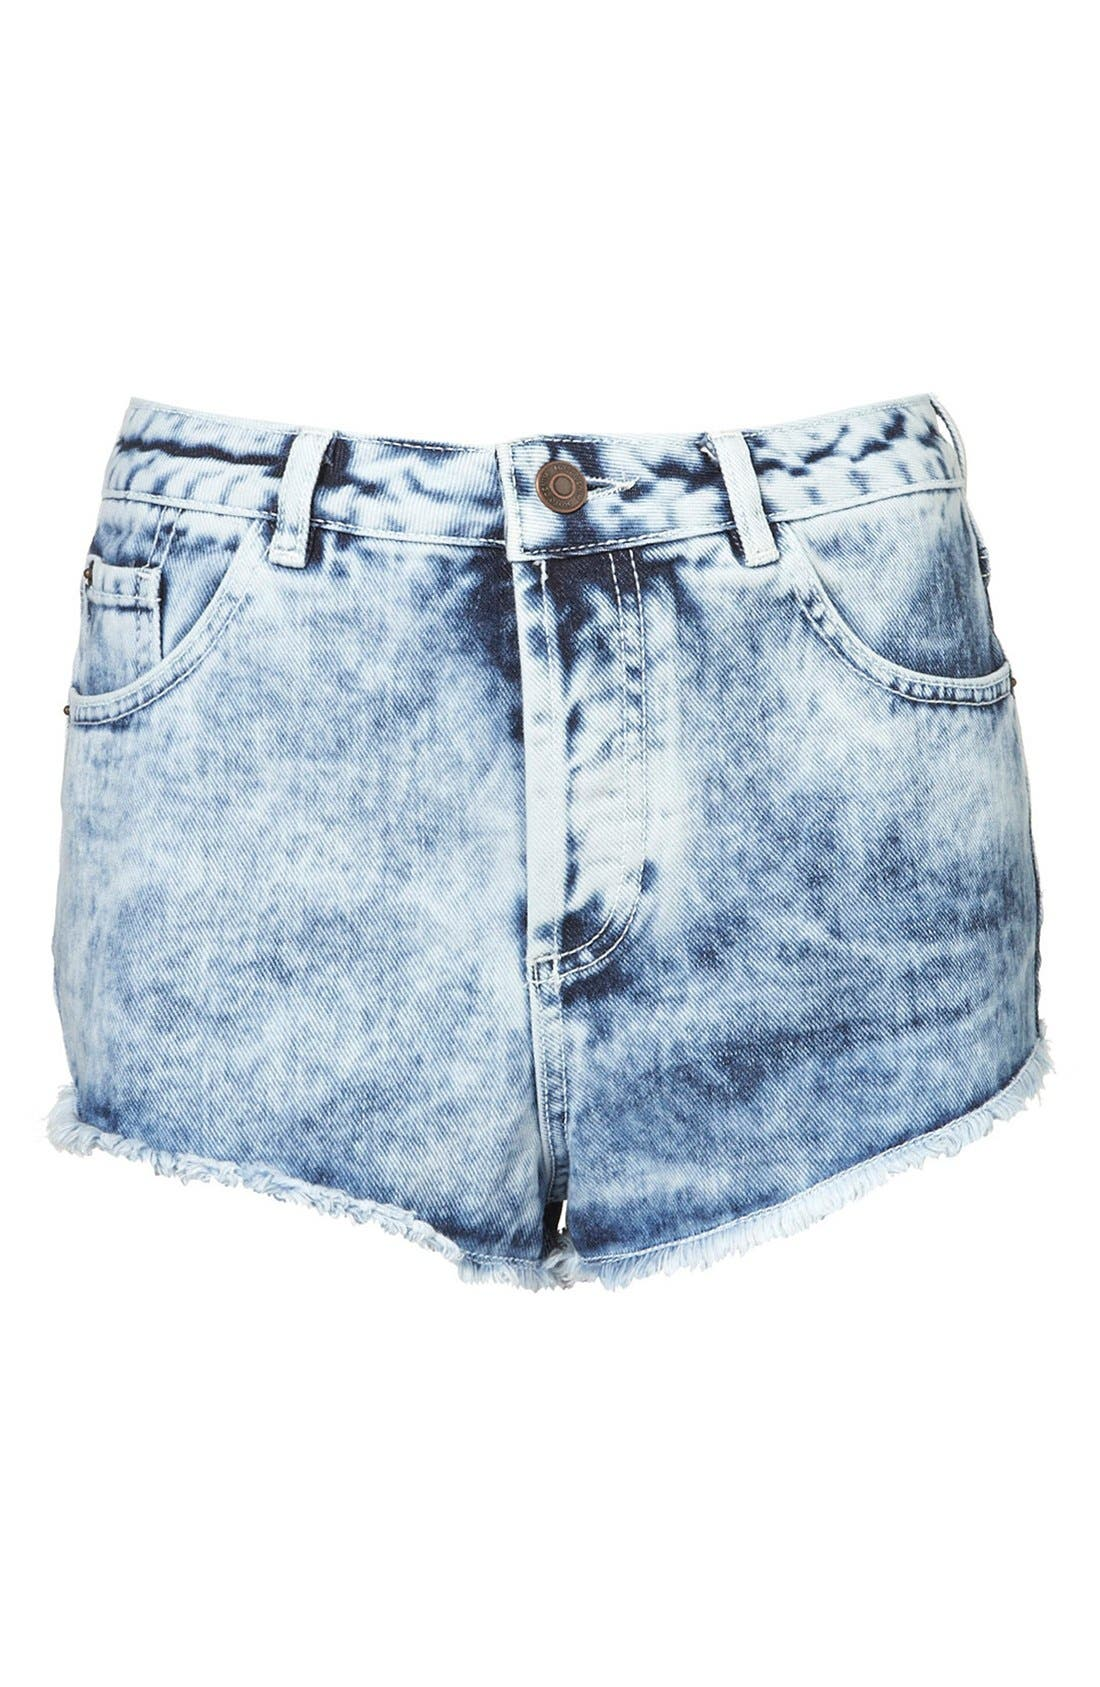 Alternate Image 3  - Topshop Moto 'Holly' Acid Wash Denim Shorts